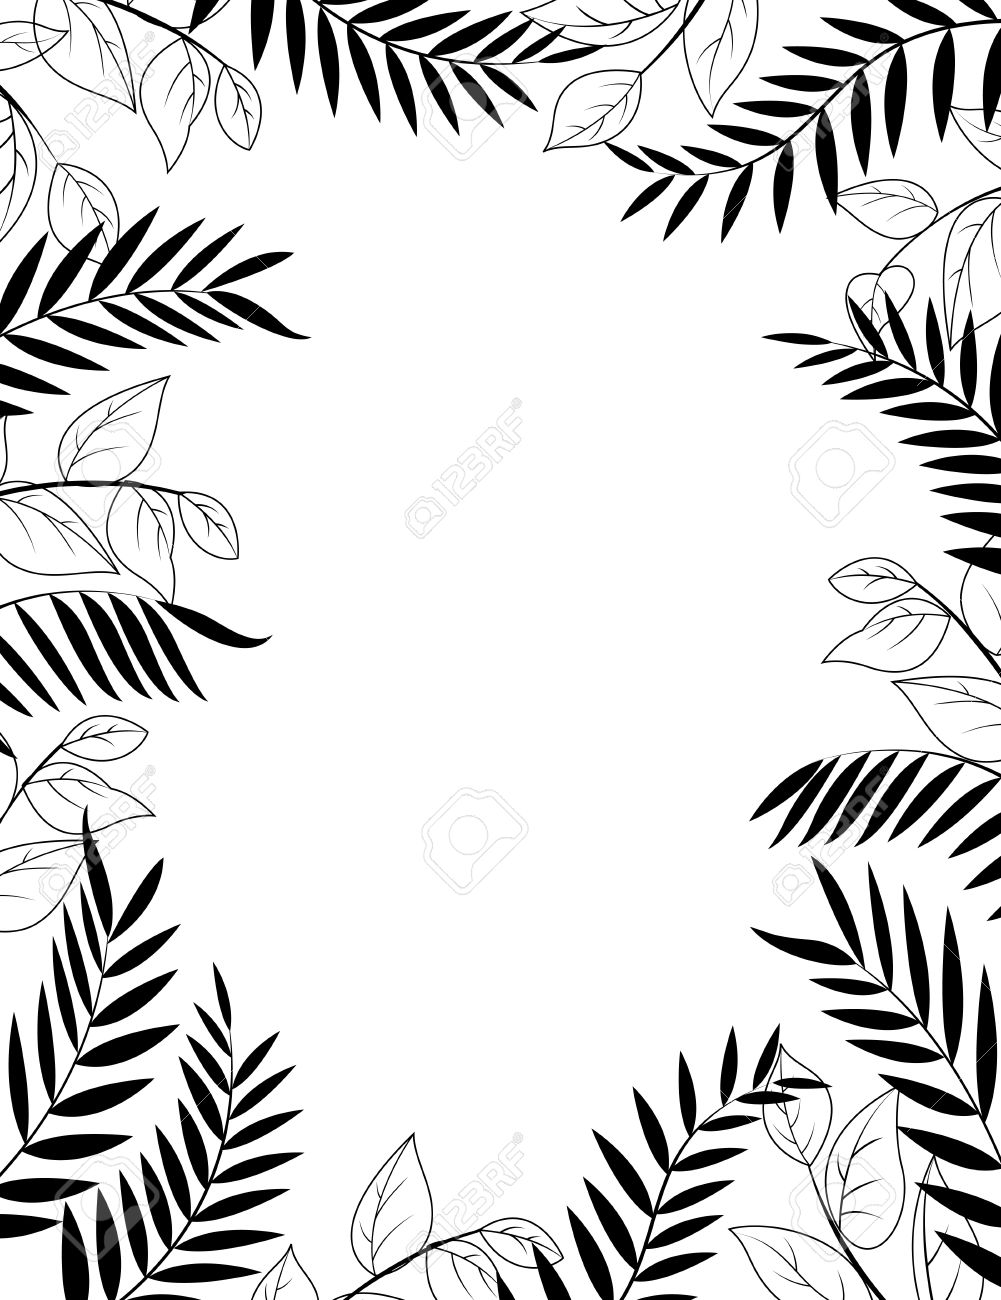 Jungle Silhouette Royalty Free Cliparts, Vectors, And Stock.